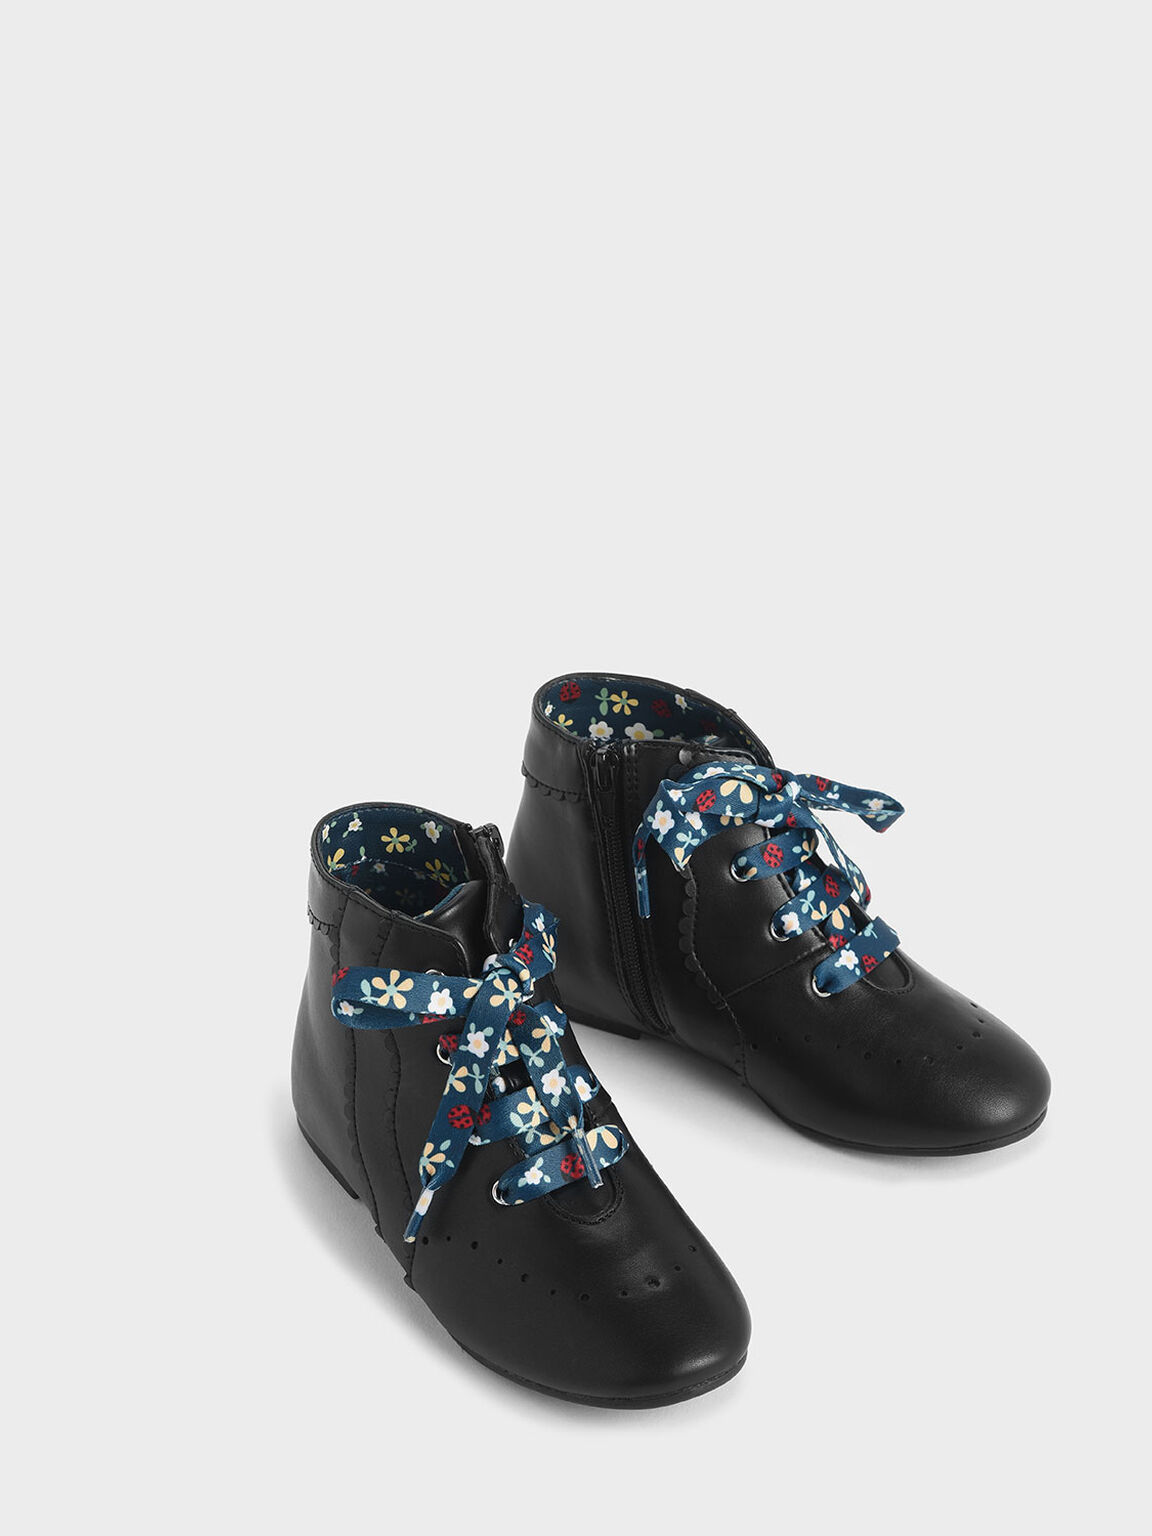 Girls' Floral Print Lace-Up Ankle Boots, Black, hi-res